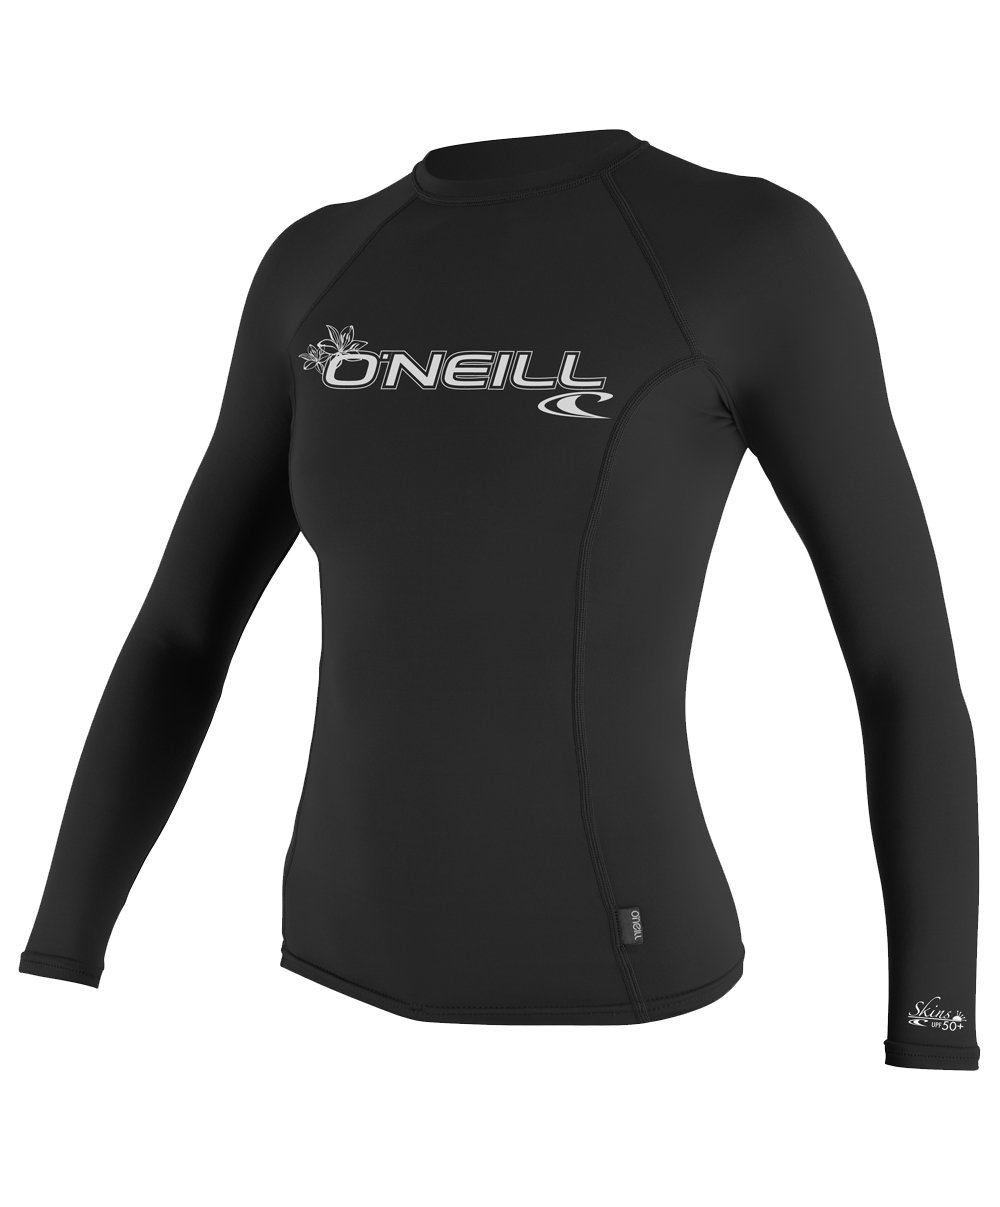 O'Neill UV Sun Protection Womens Basic Skins Long Sleeve Crew Sun Shirt Rash Guard, Black, Medium